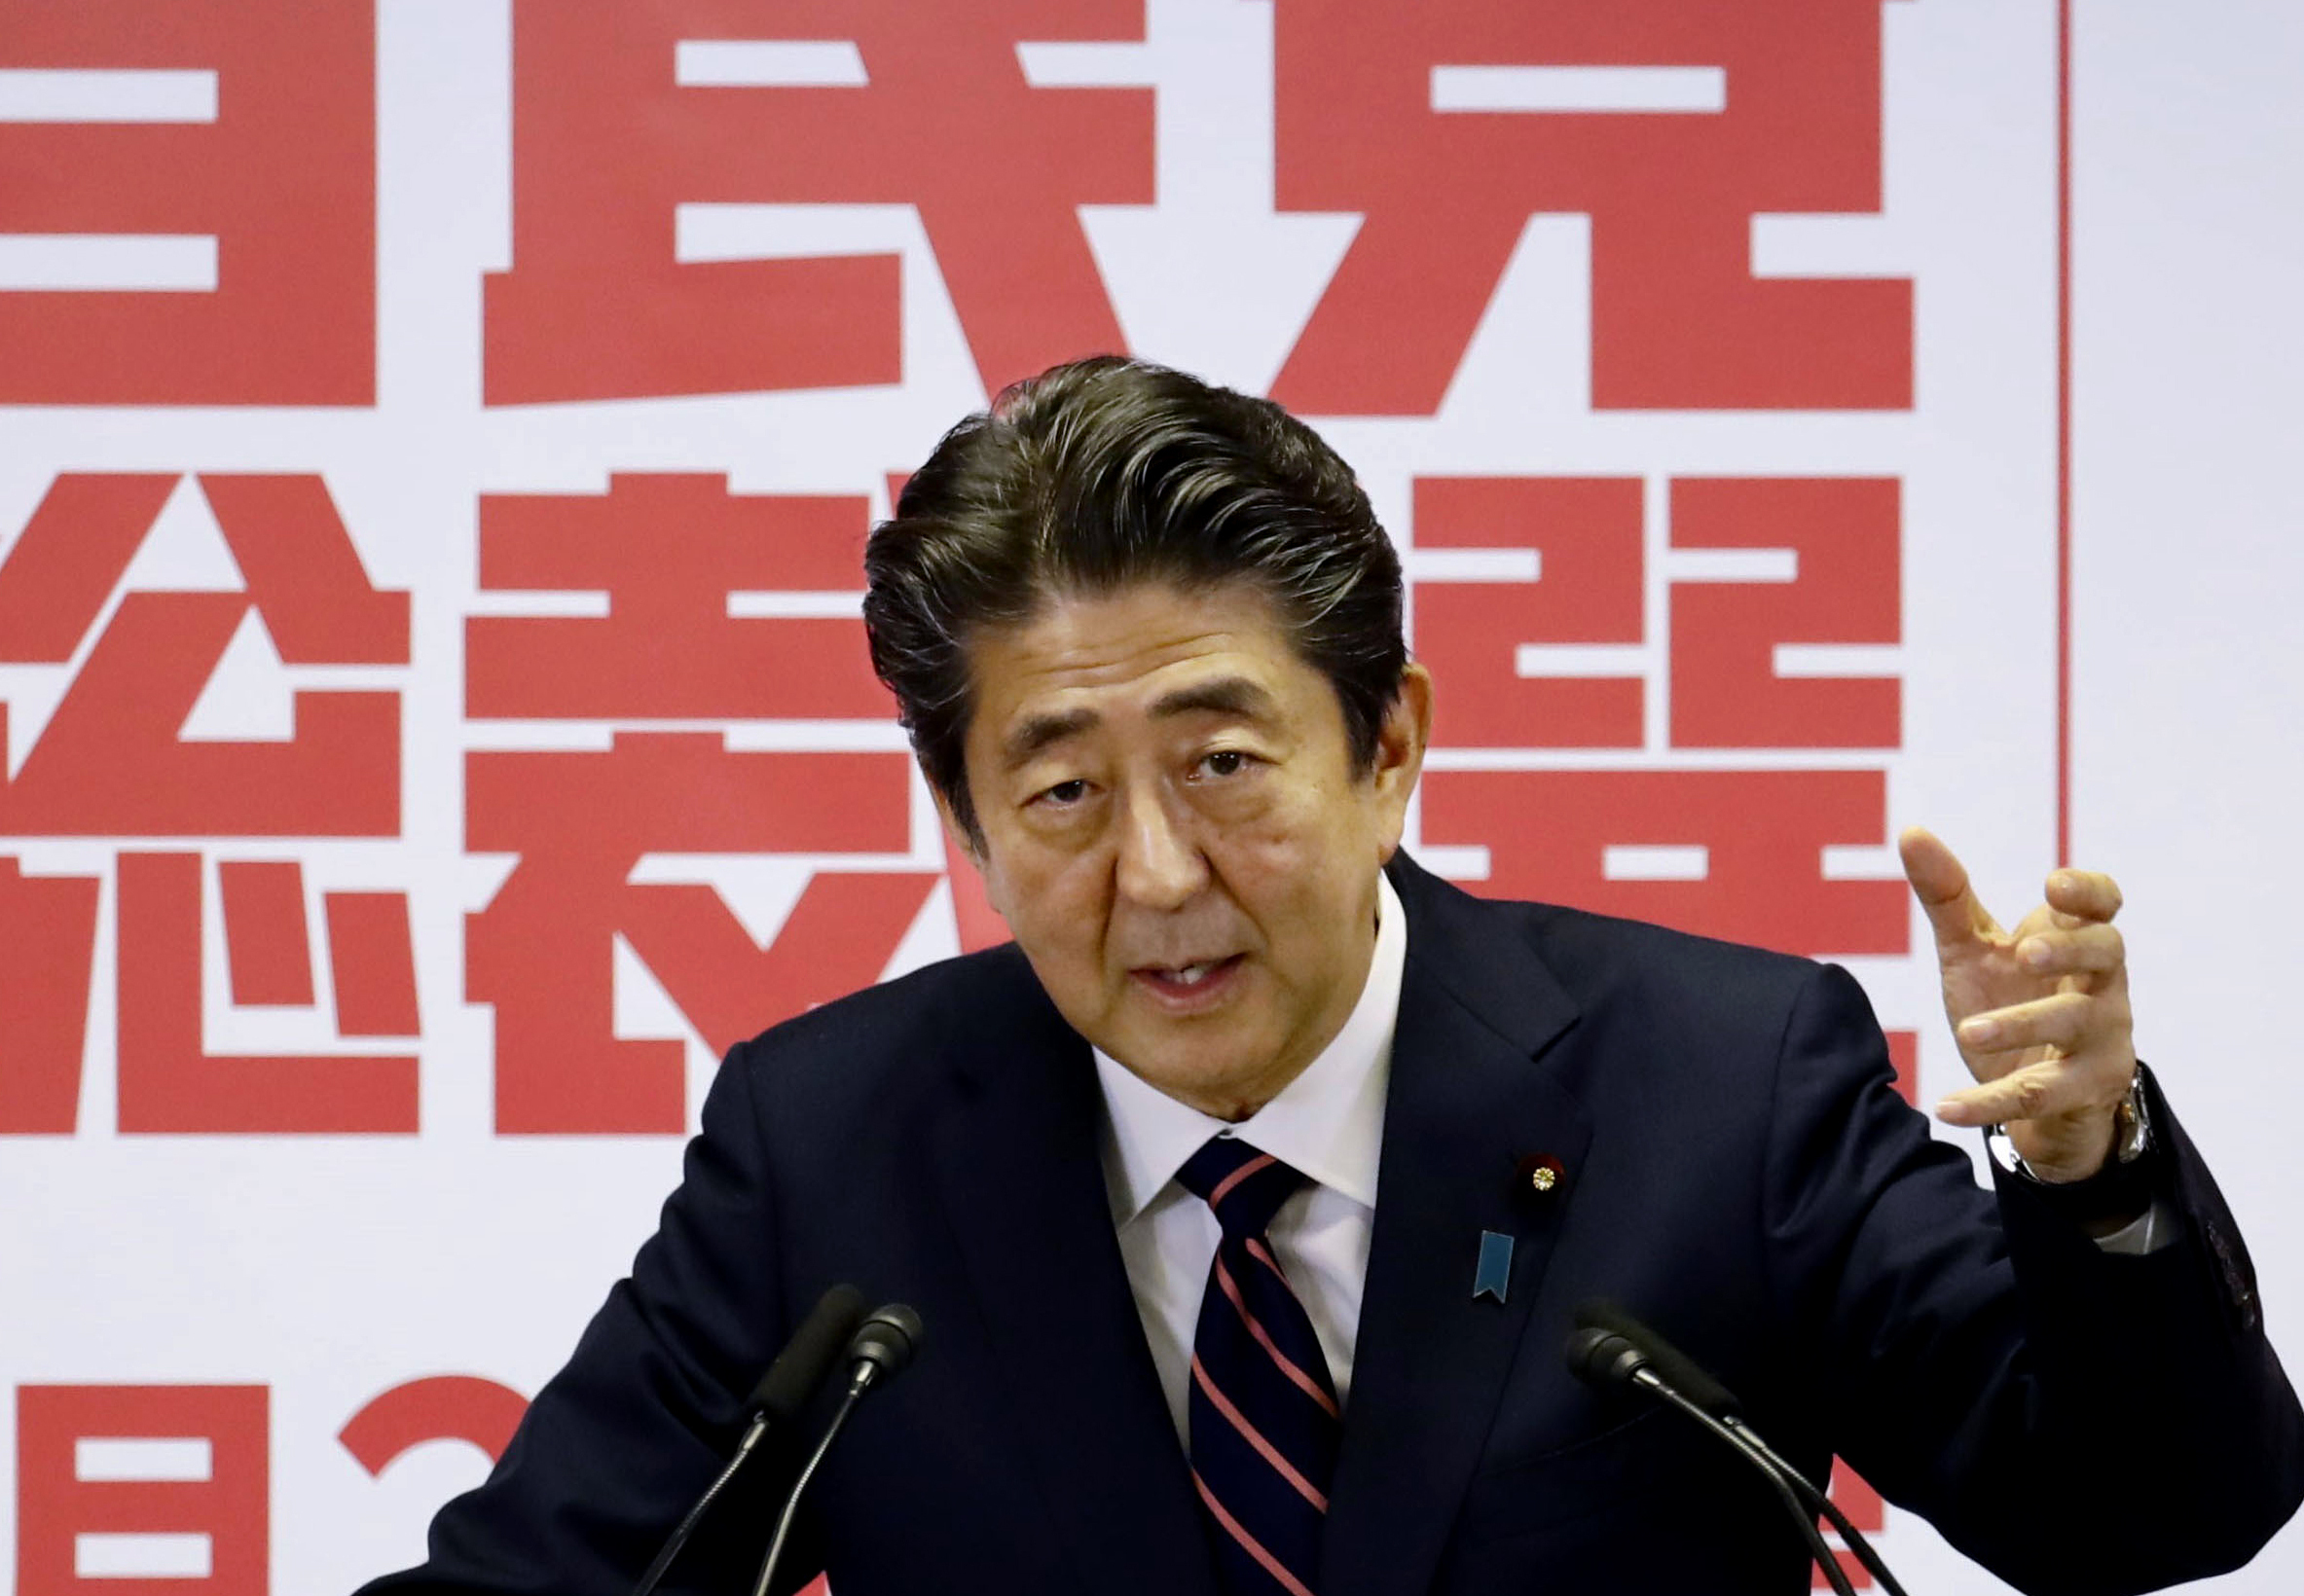 Shinzo Abe is expected to become the longest serving Japanese prime minister in 2021